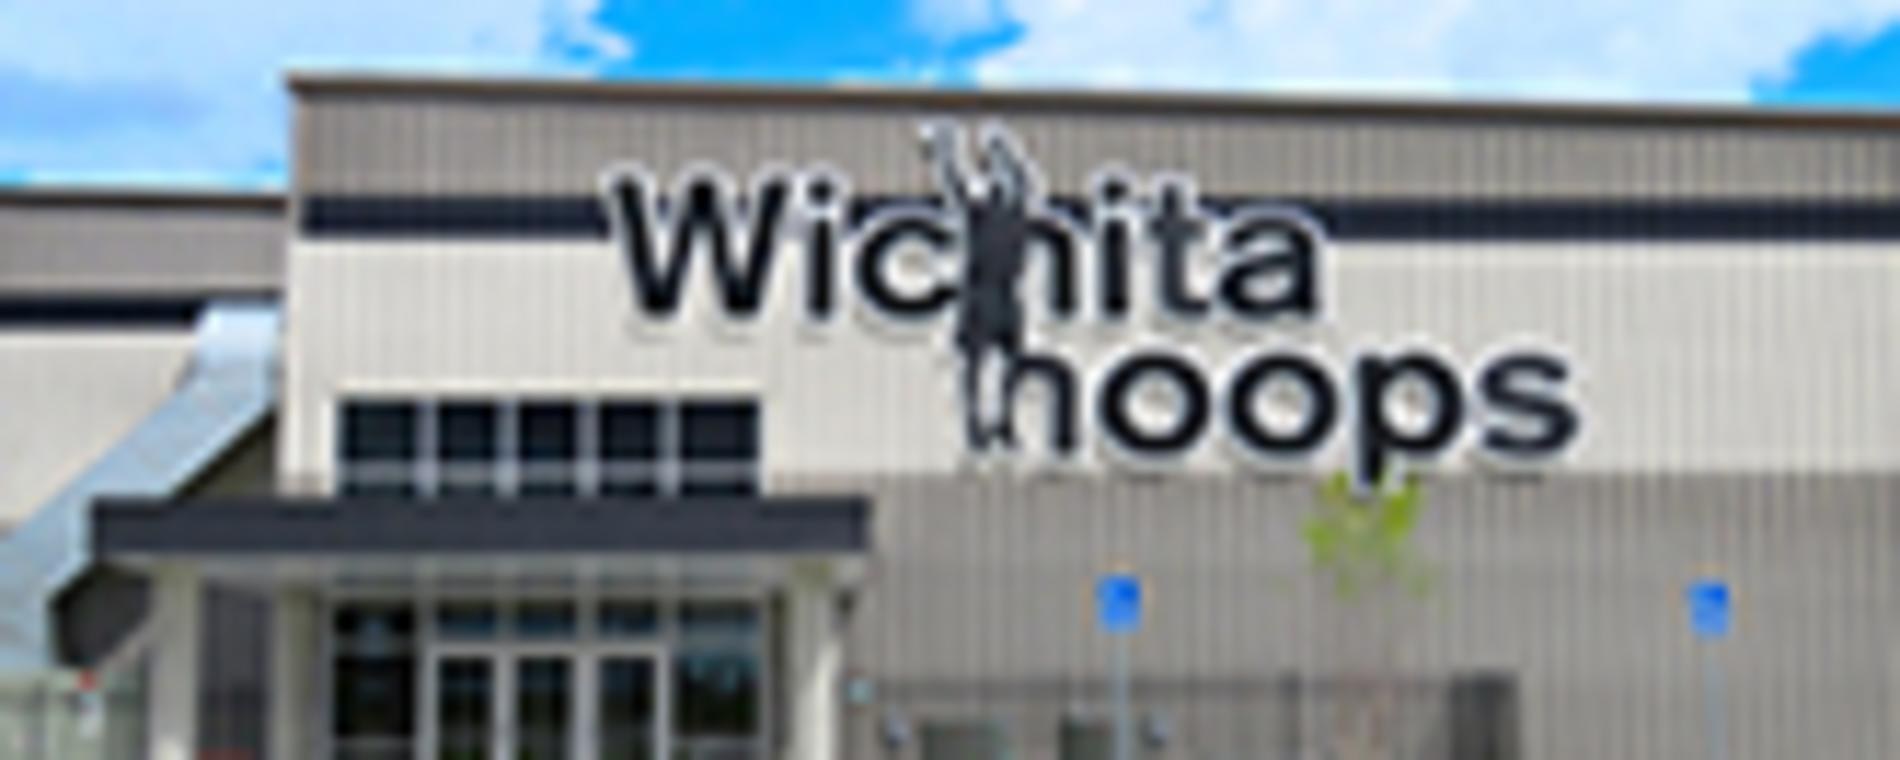 Wichita Hoops Building Front